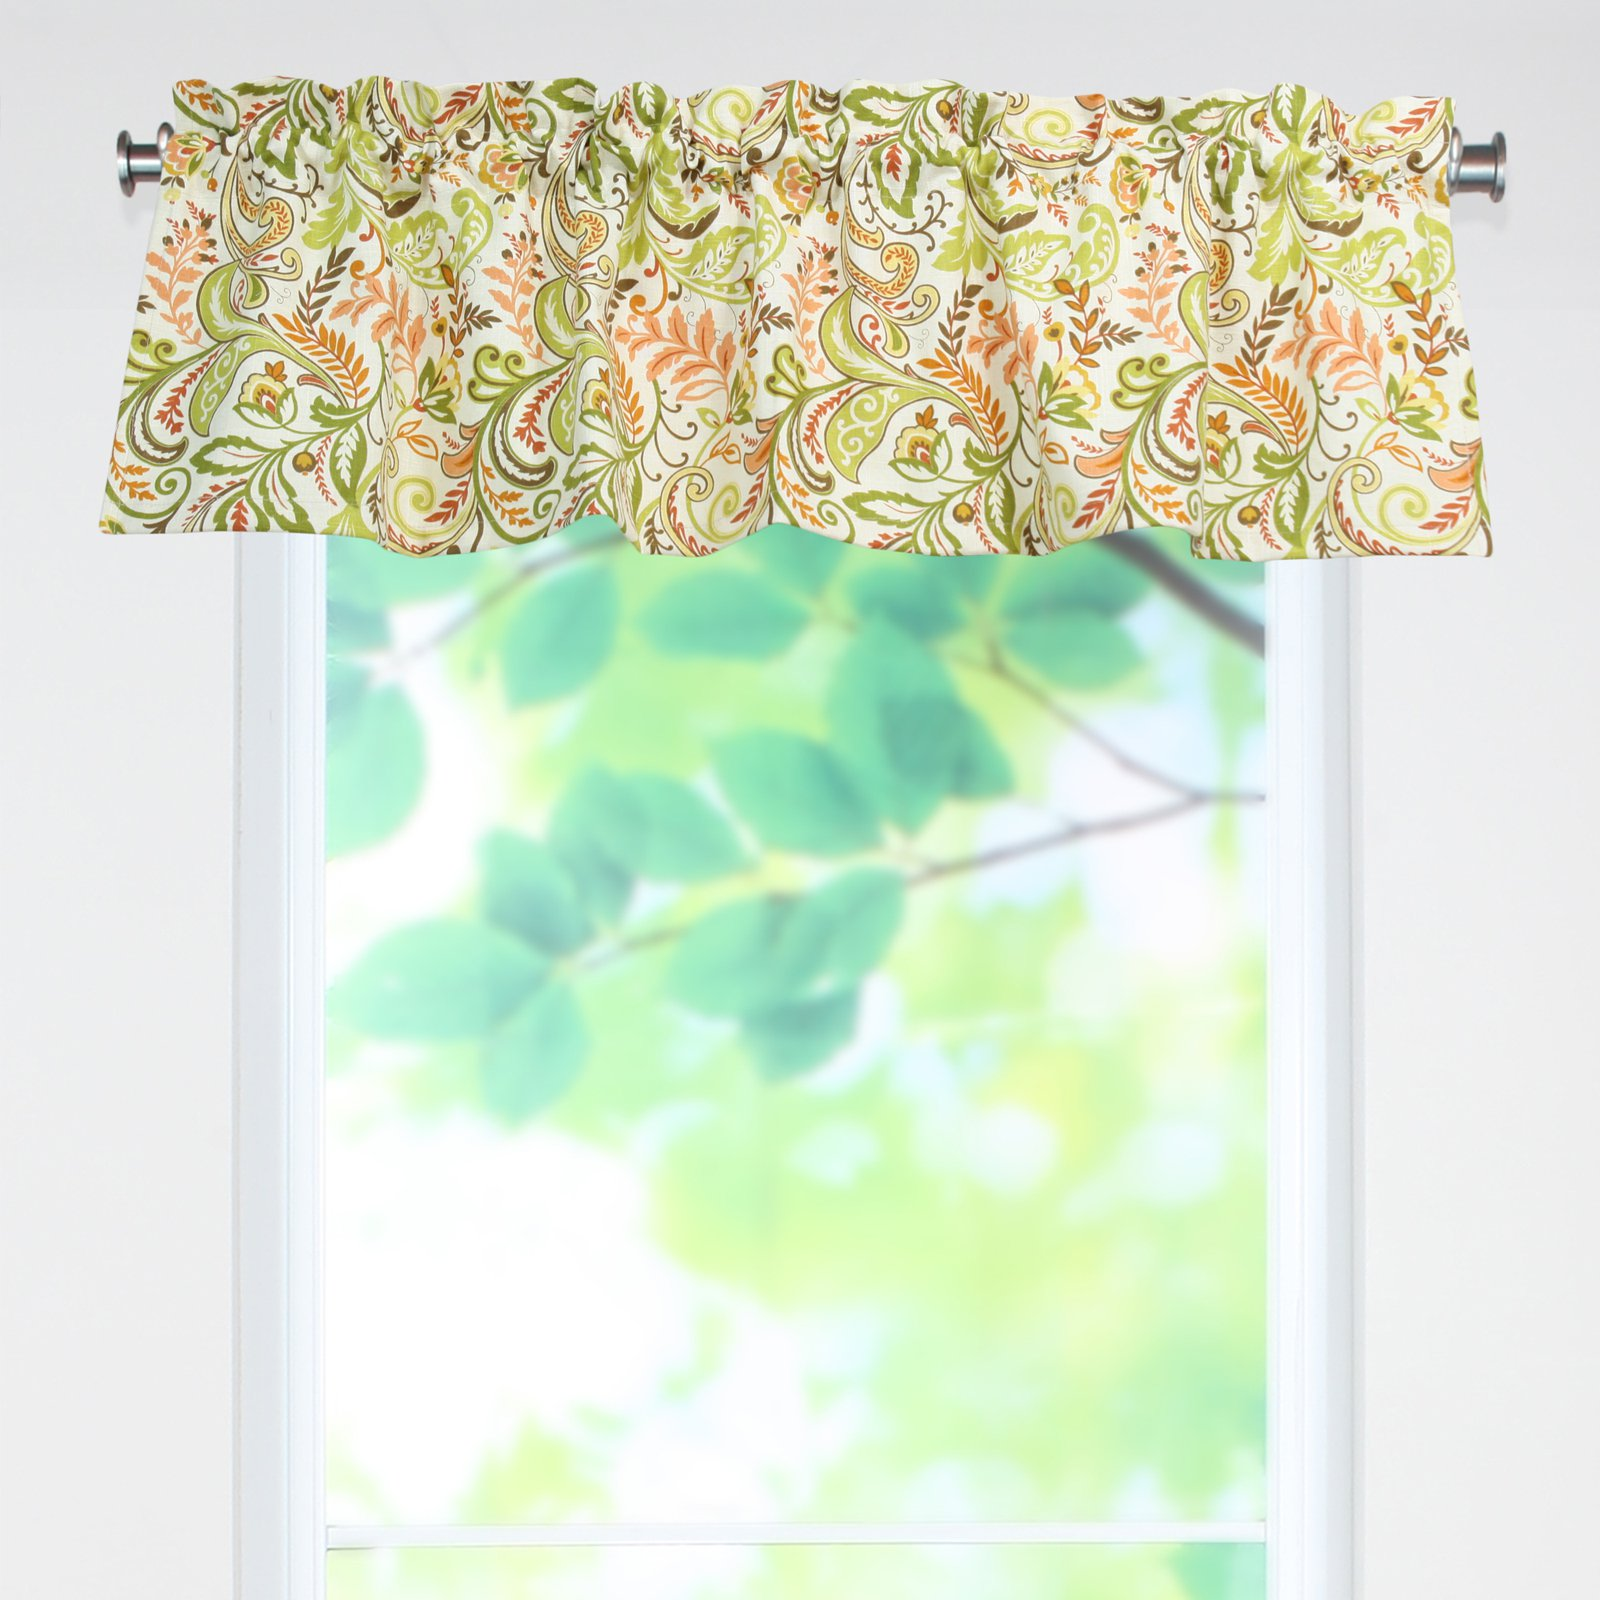 Brite Ideas Living Findlay Apricot Rod Pocket Curtain Valance